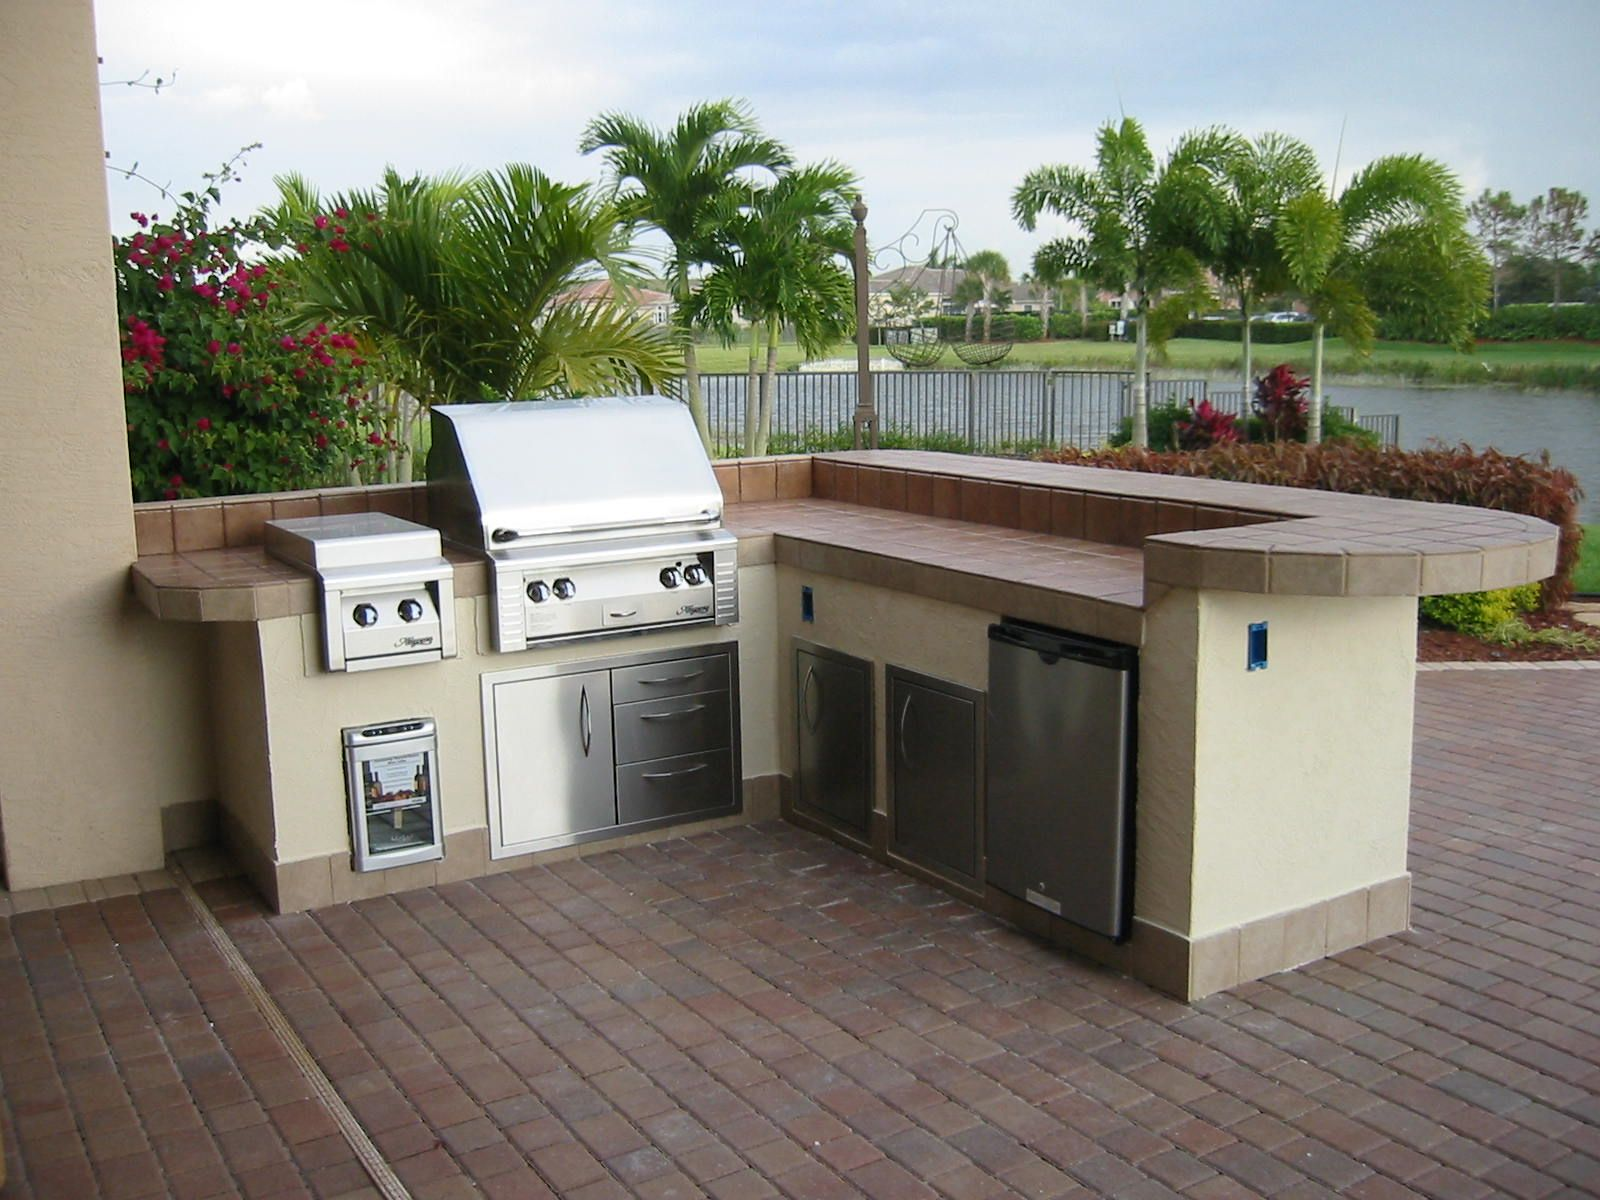 Outdoor Kitchen Grill Islands Built In On Site With Your Design Outdoor Kitchen Decor Outdoor Kitchen Grill Modular Outdoor Kitchens